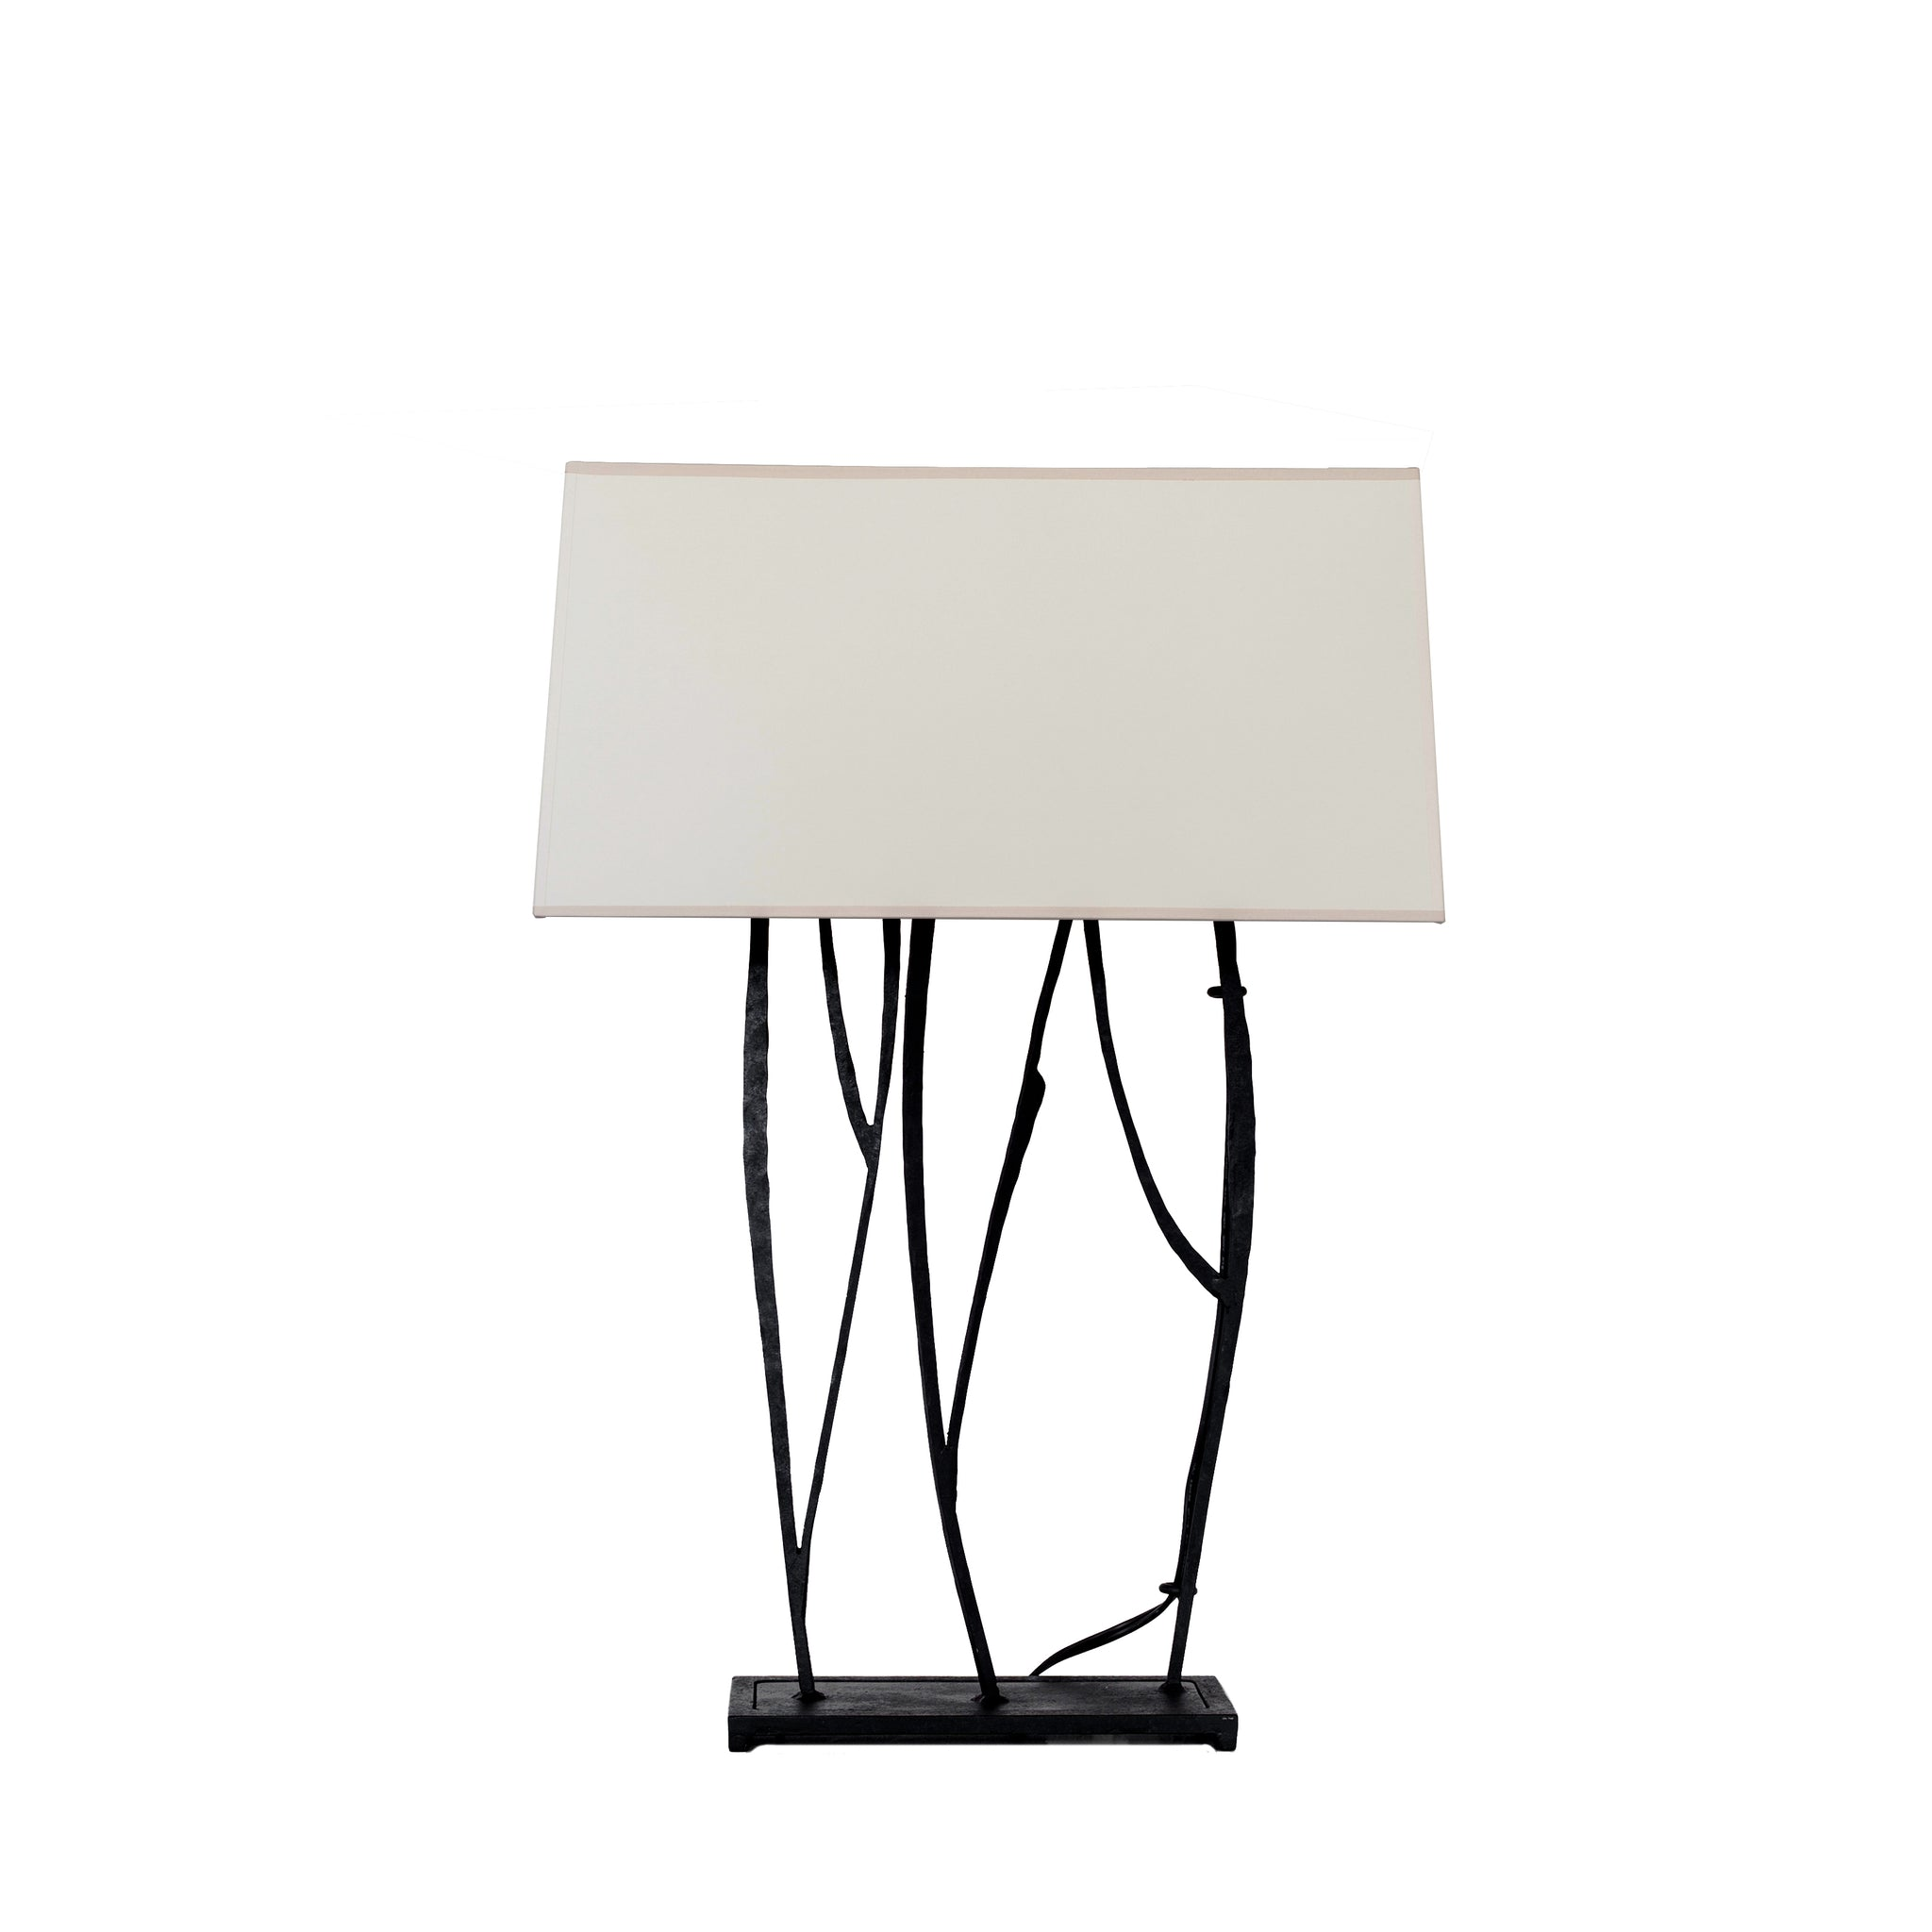 Aspen Table Lamp in Black Rust with Natural Paper Shade